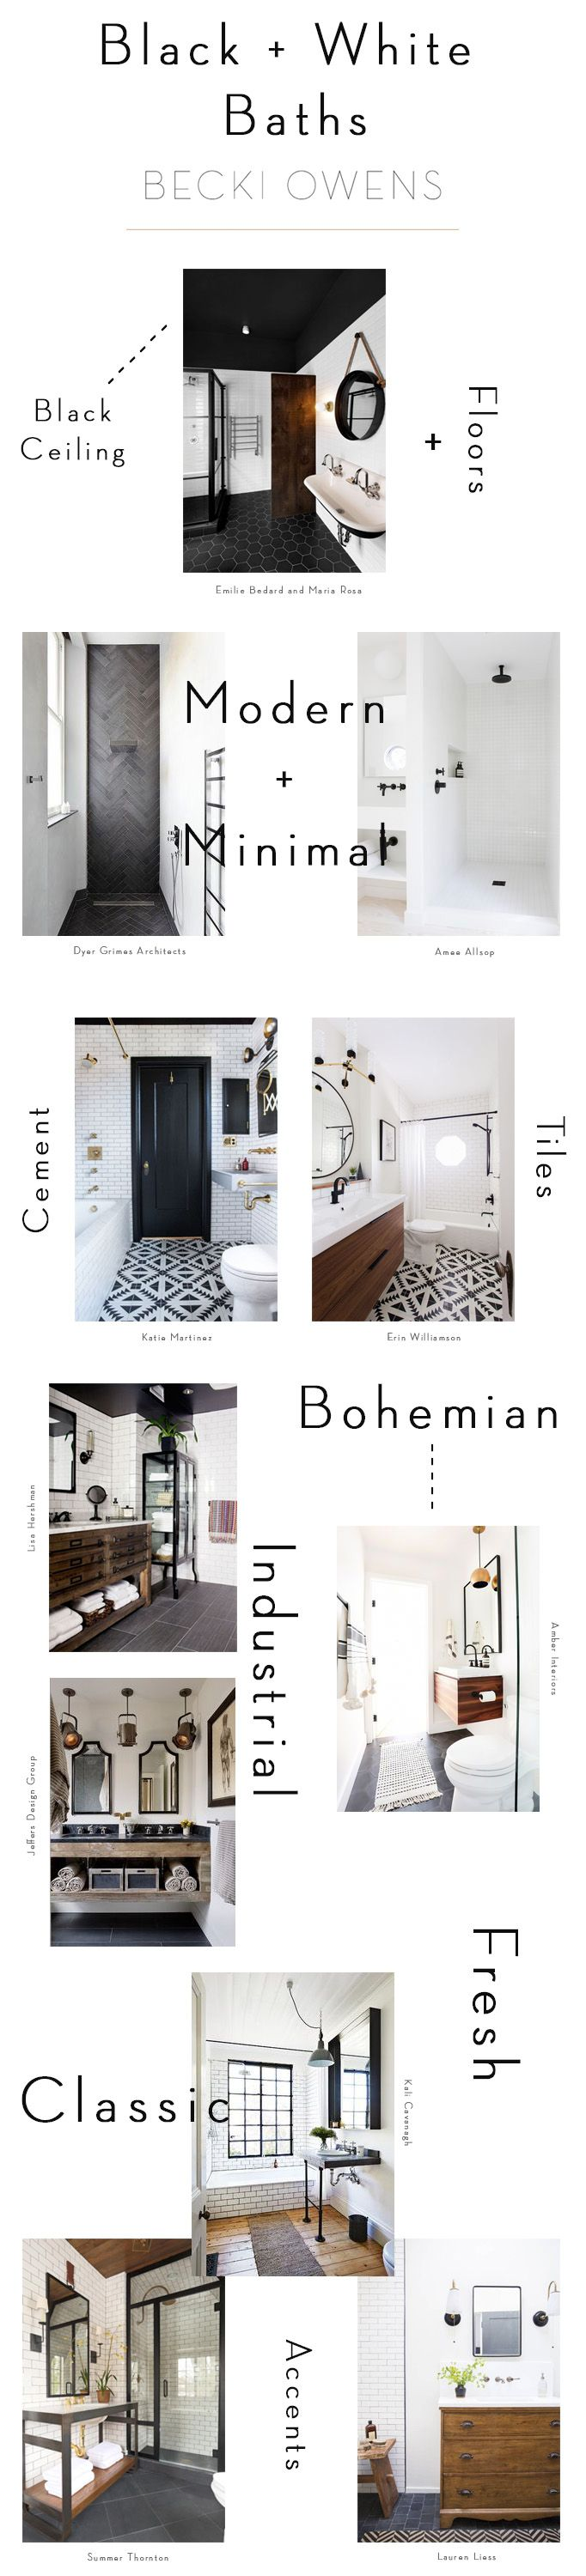 Bathroom ideas black and white - Bold Beautiful Edgy Black One Of My Favorite Colors To Work With Lately Black And White Bathroom Ideasblack